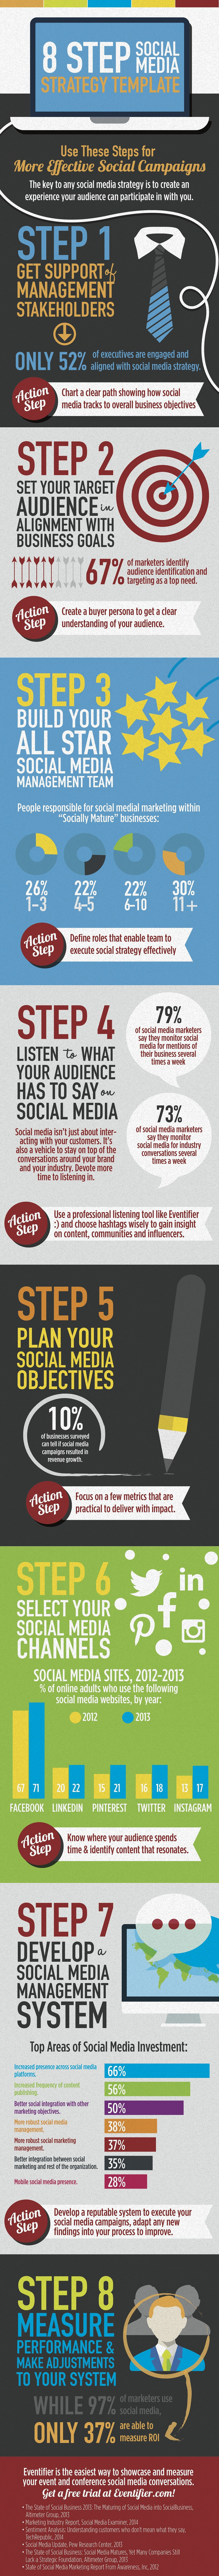 How to build social media marketing plan for your business